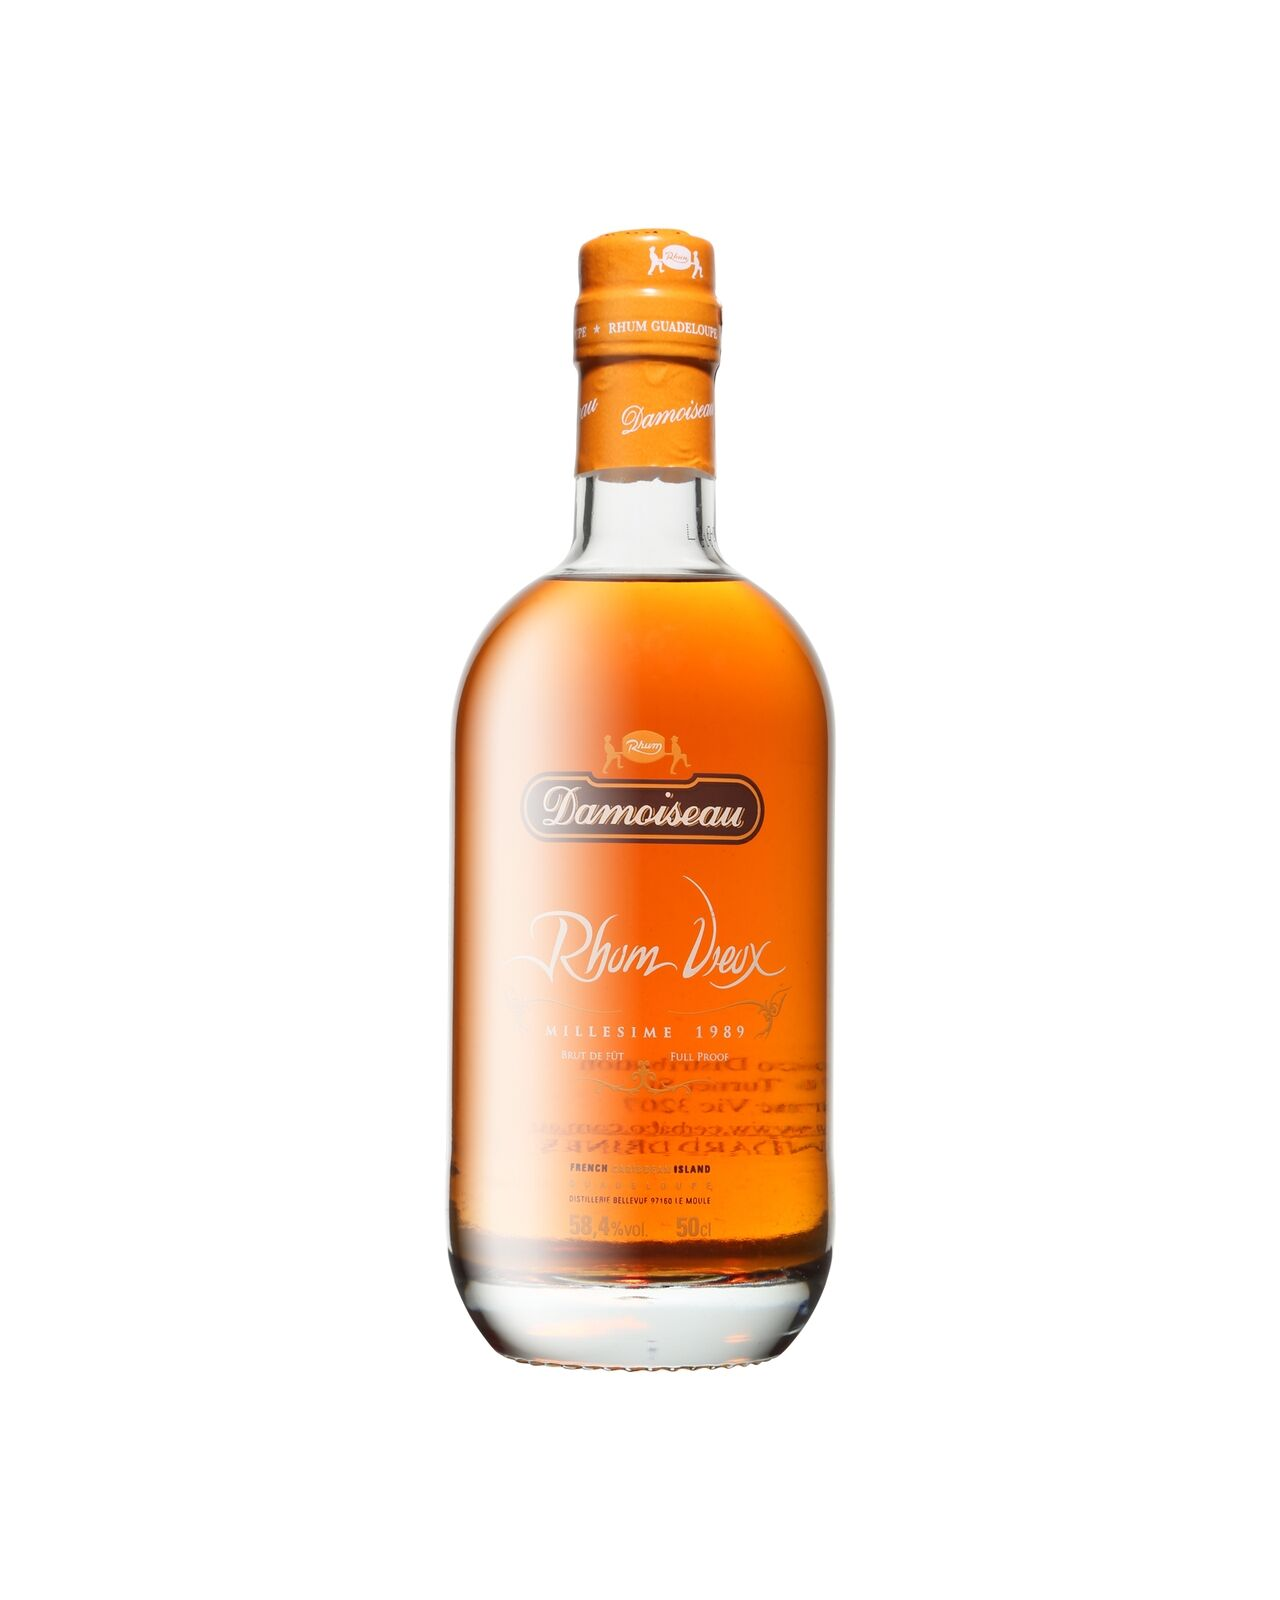 In January 2010, Damoiseau distillery bottled some of its most precious vintages